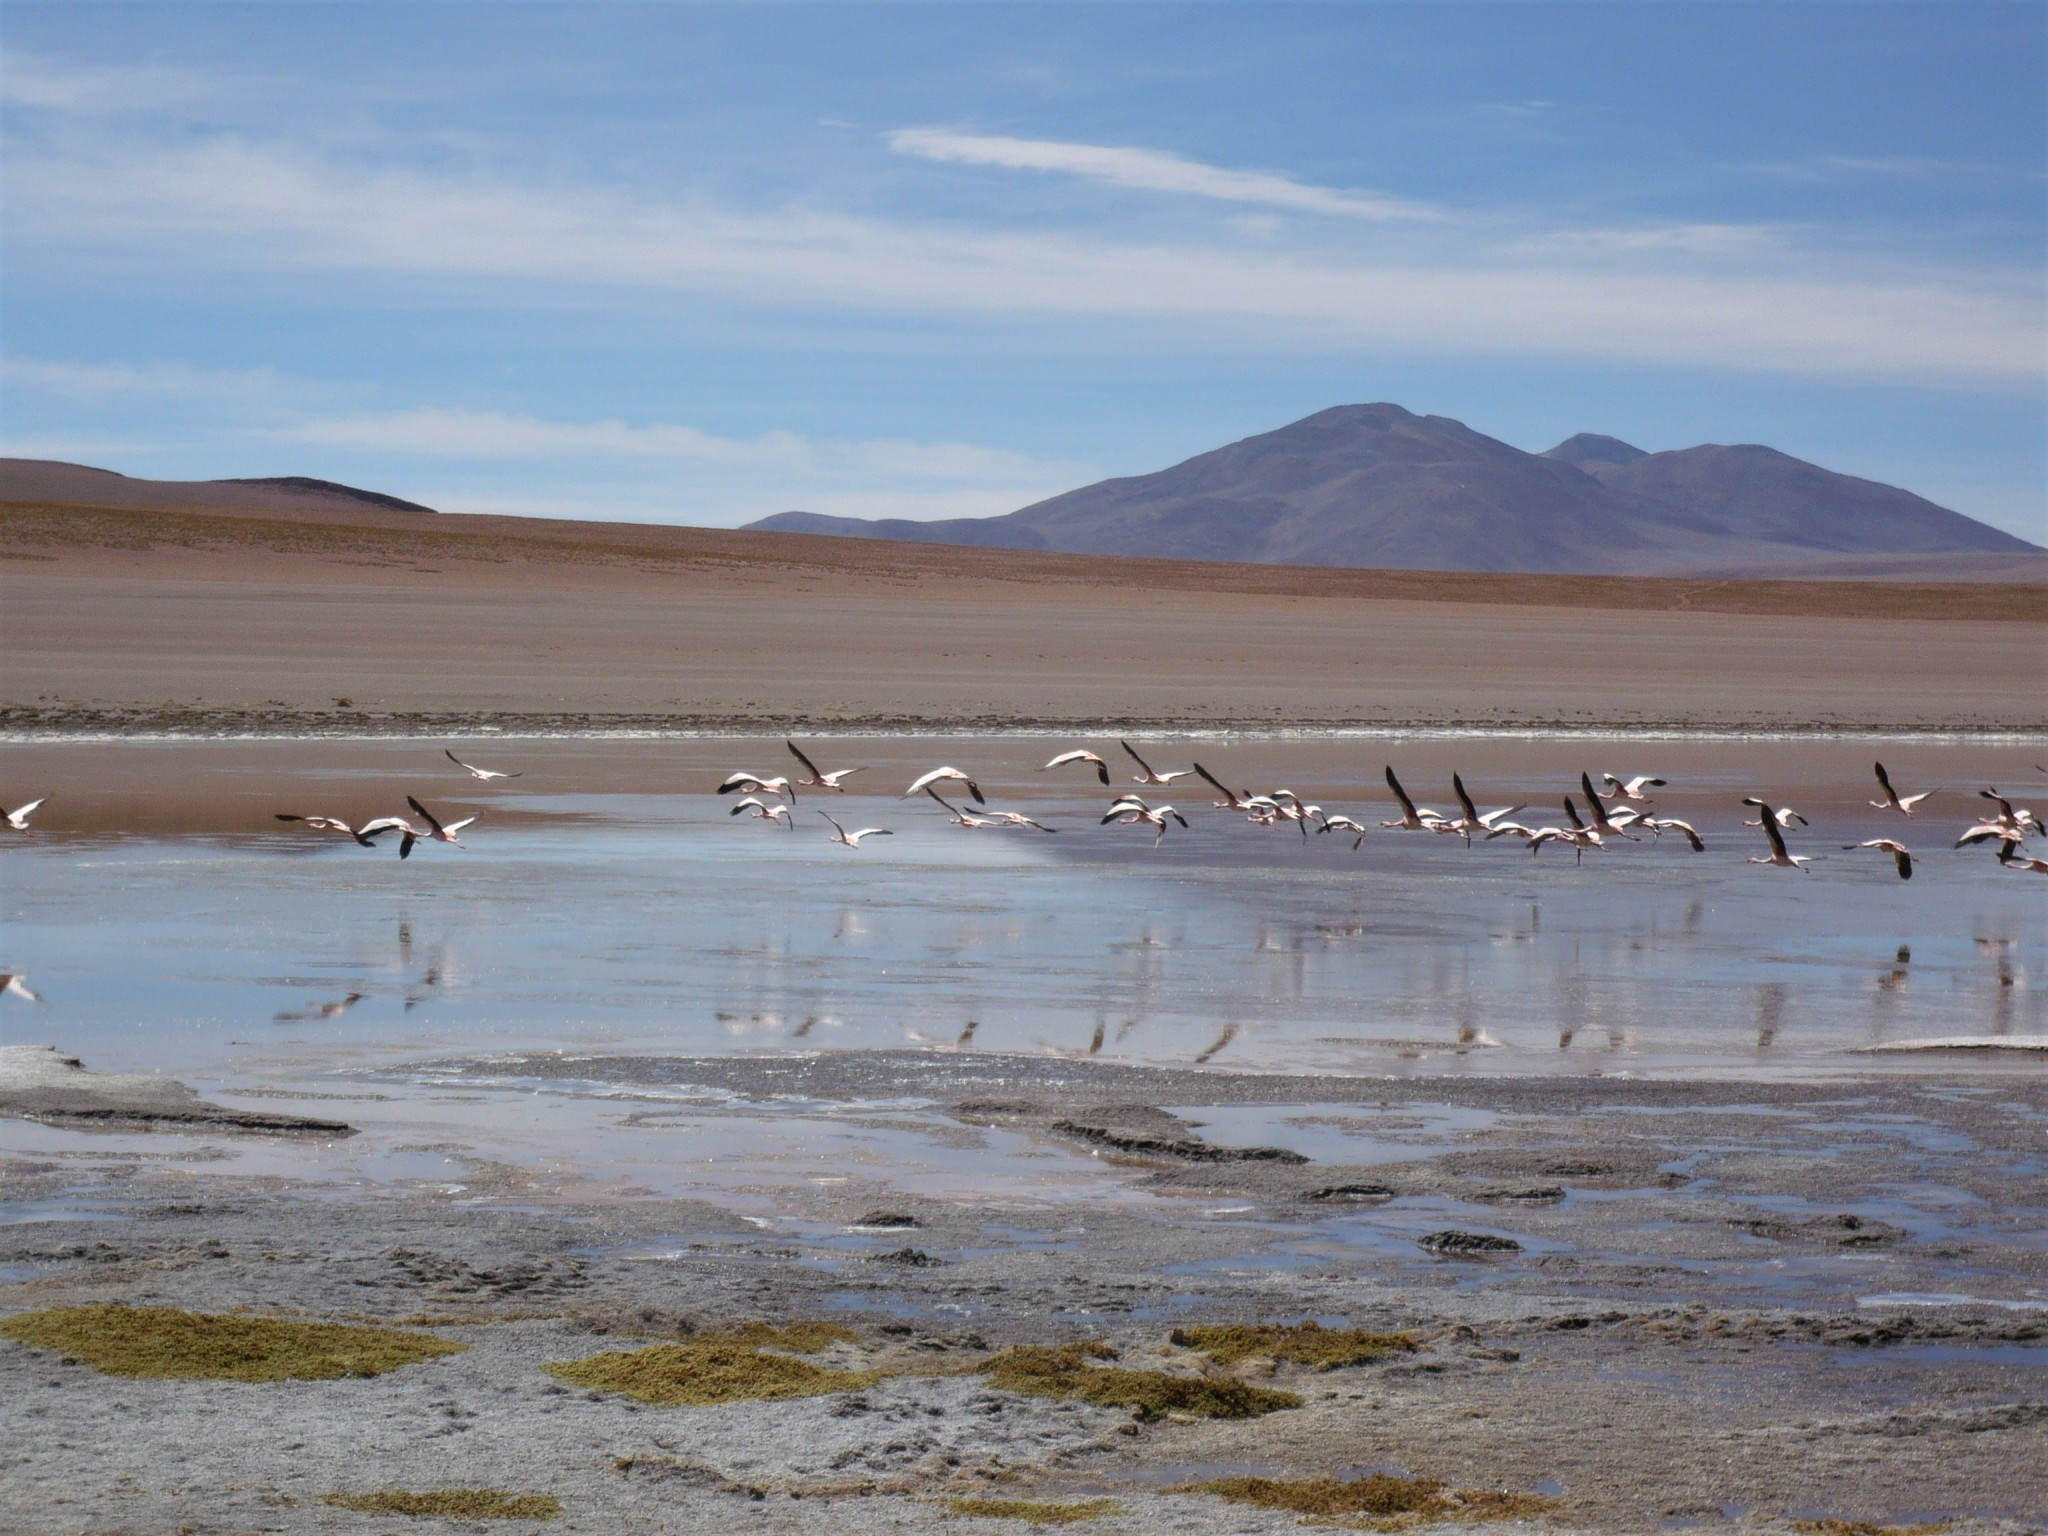 A scenic view of a flock of flamingos flying low over a lake in the Bolivian highlands.